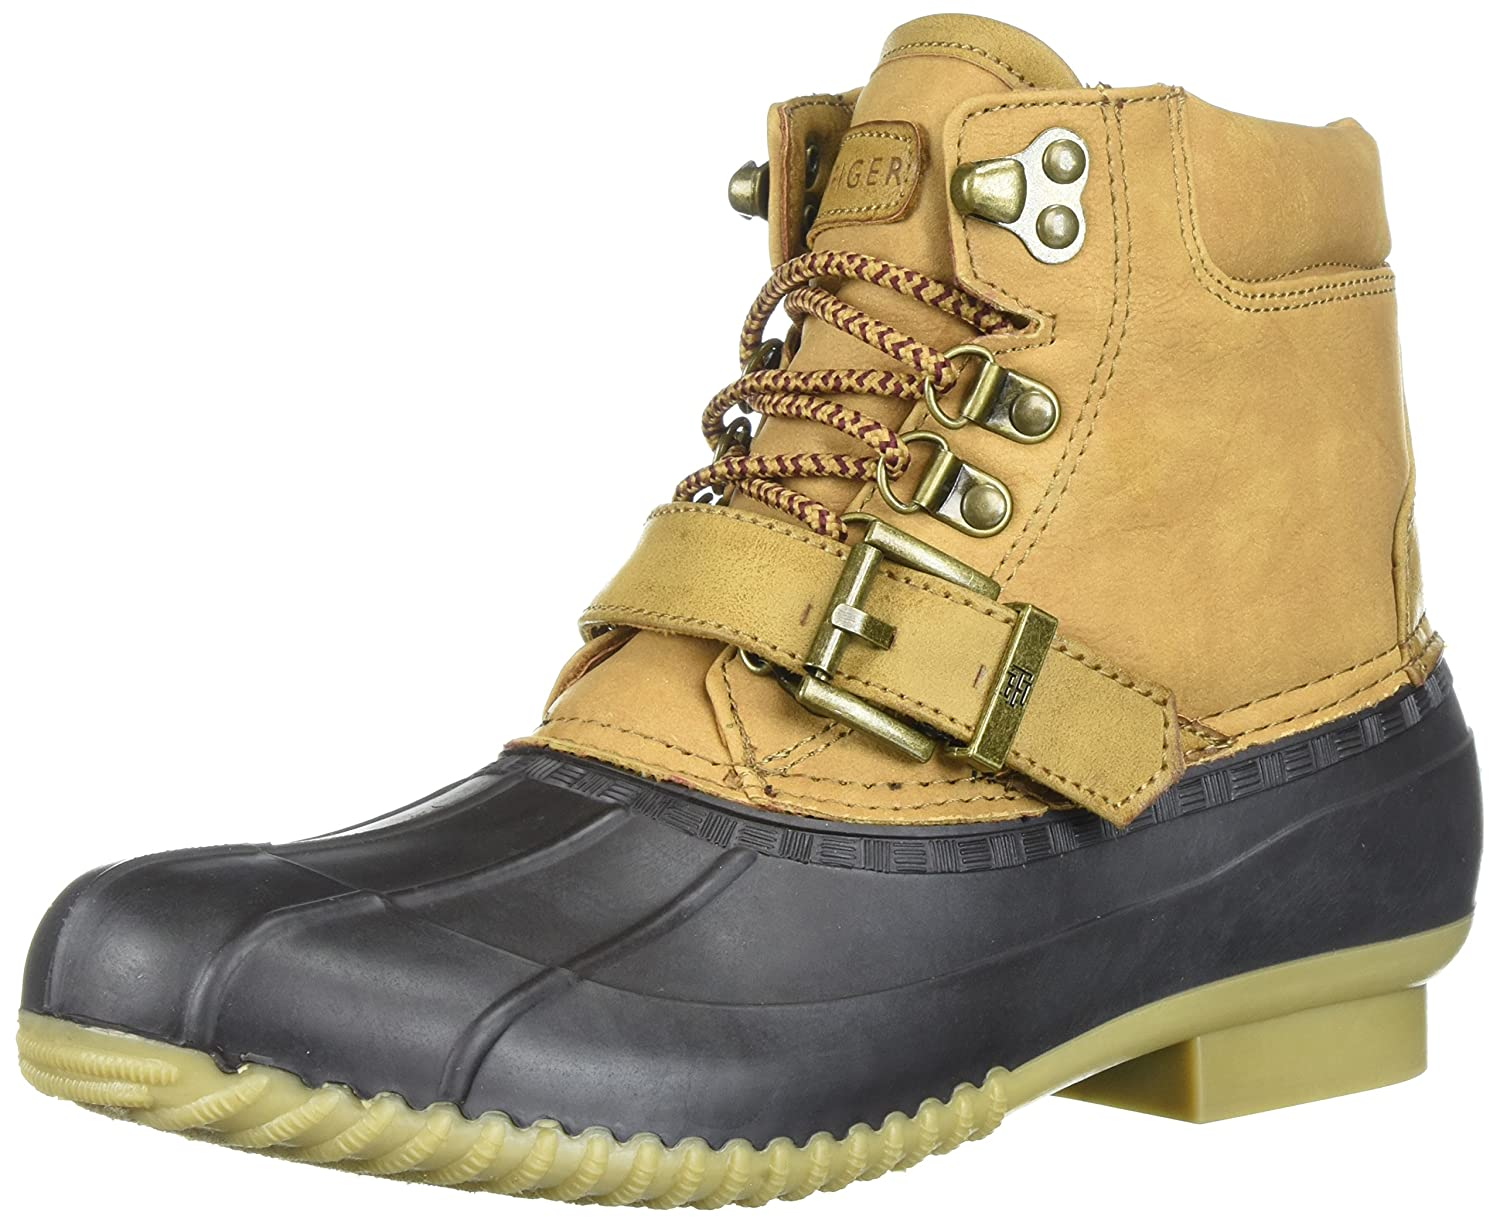 Tommy Hilfiger Women's Regin Snow Boot B06XVK3VJT 10 B(M) US|Neutral